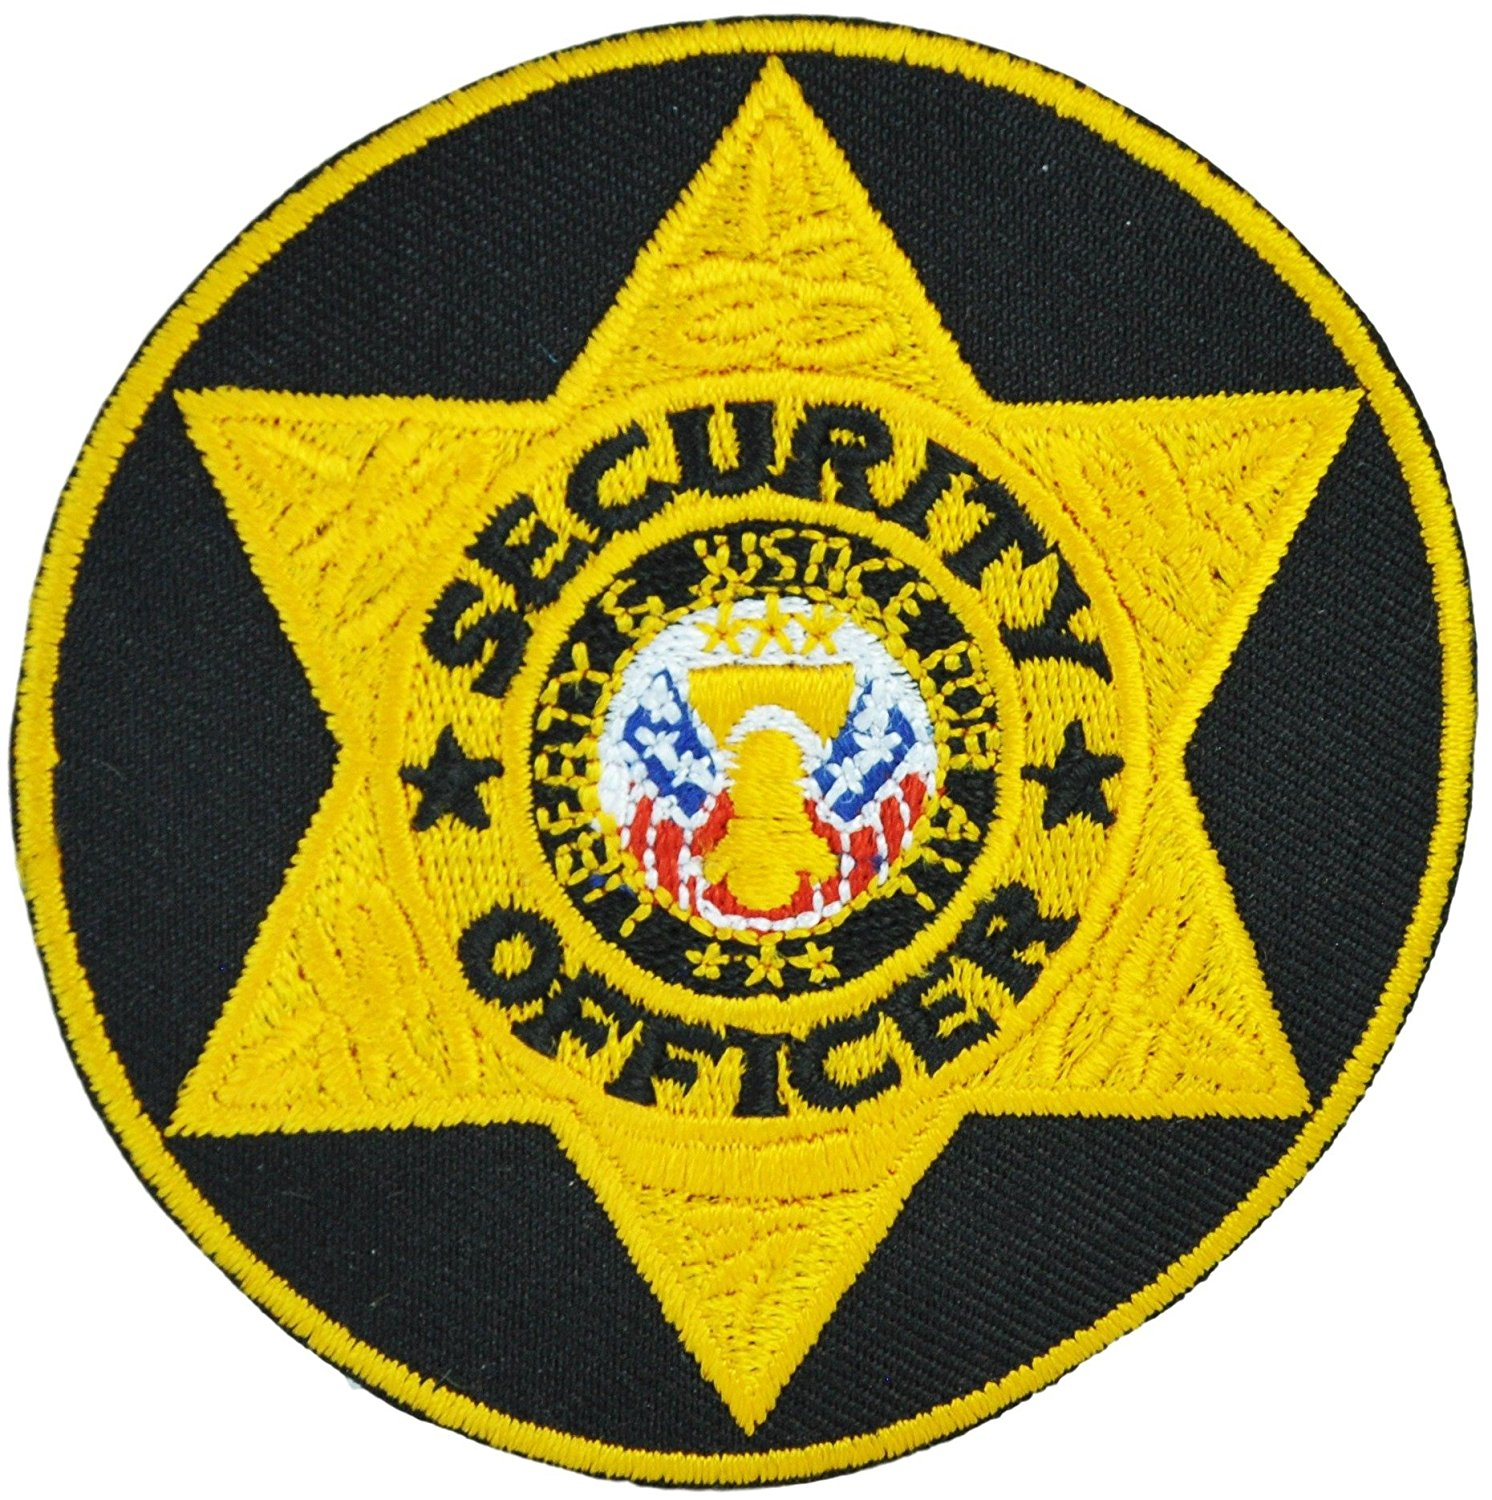 Tactical 365 Operation First Response Pair of Round Security Officer Emblem Patch - Gold